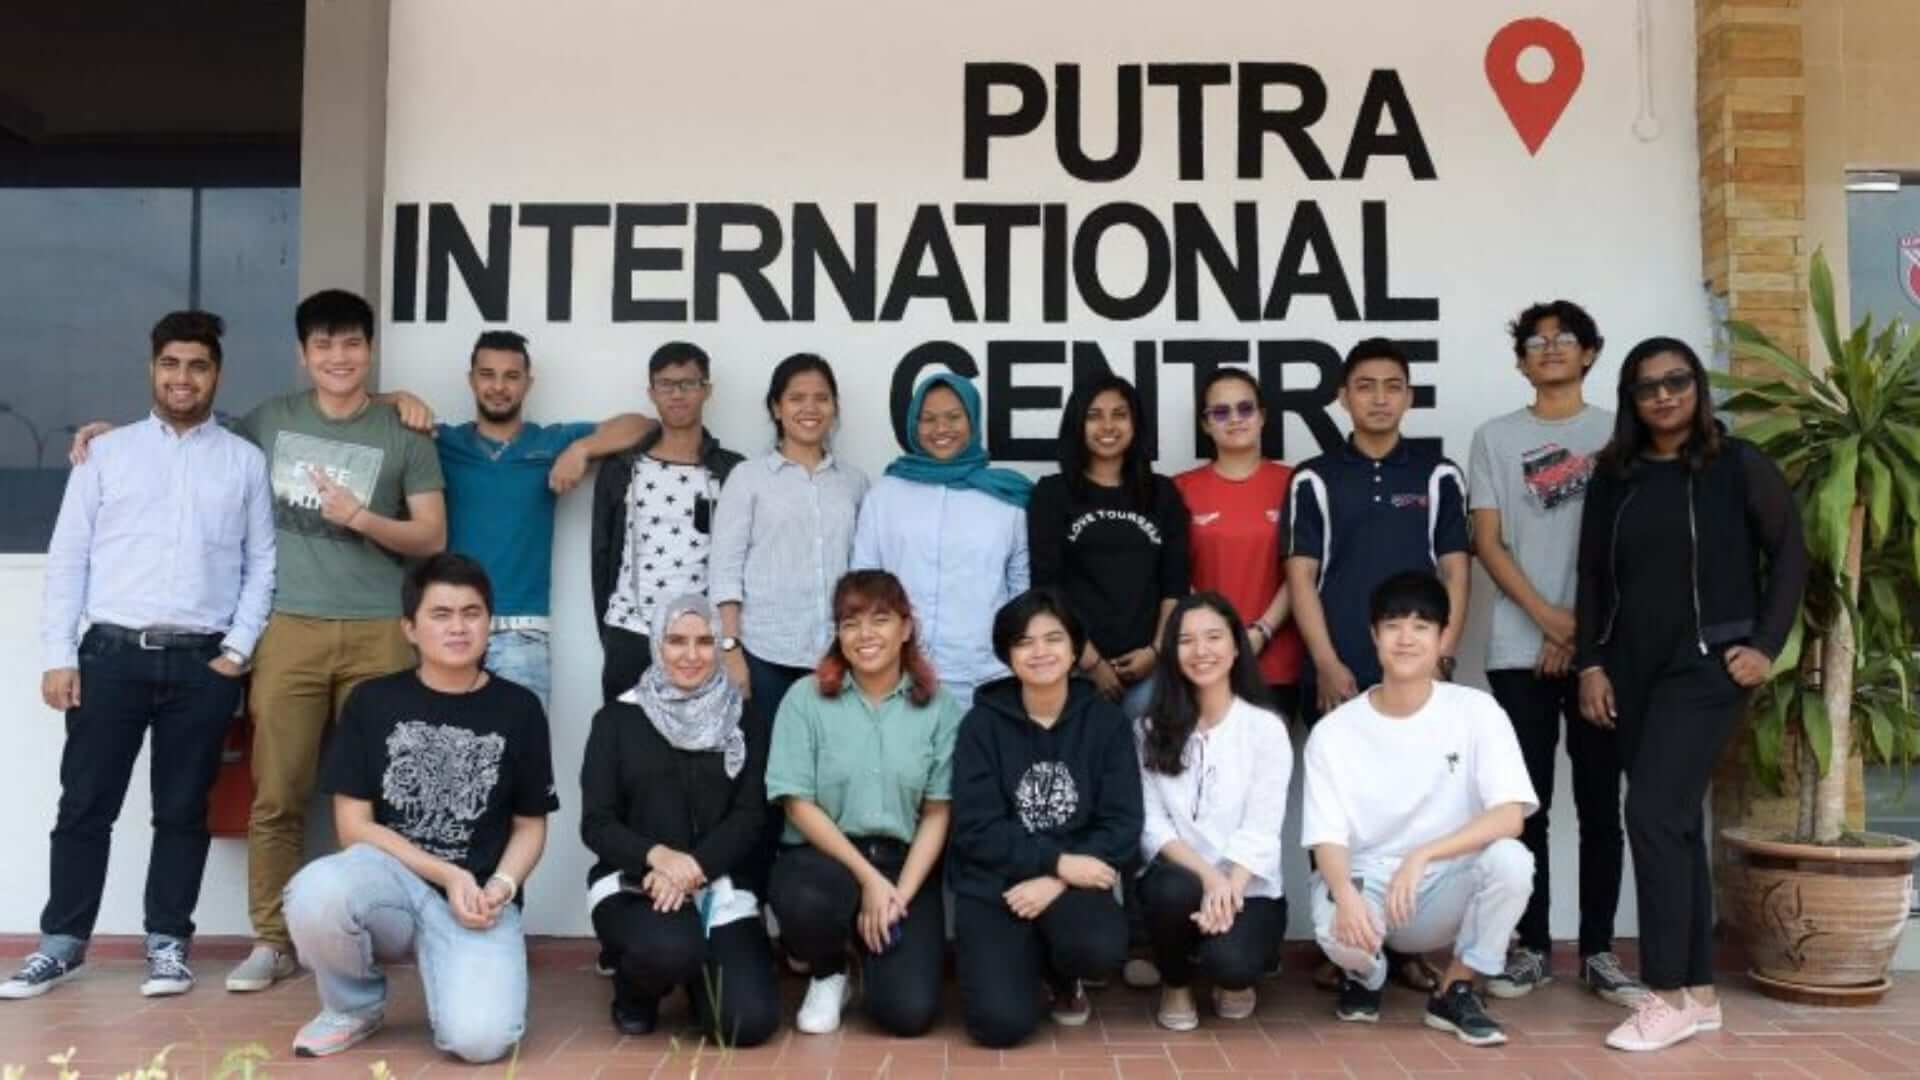 A group picture of students at an university in Malaysia.